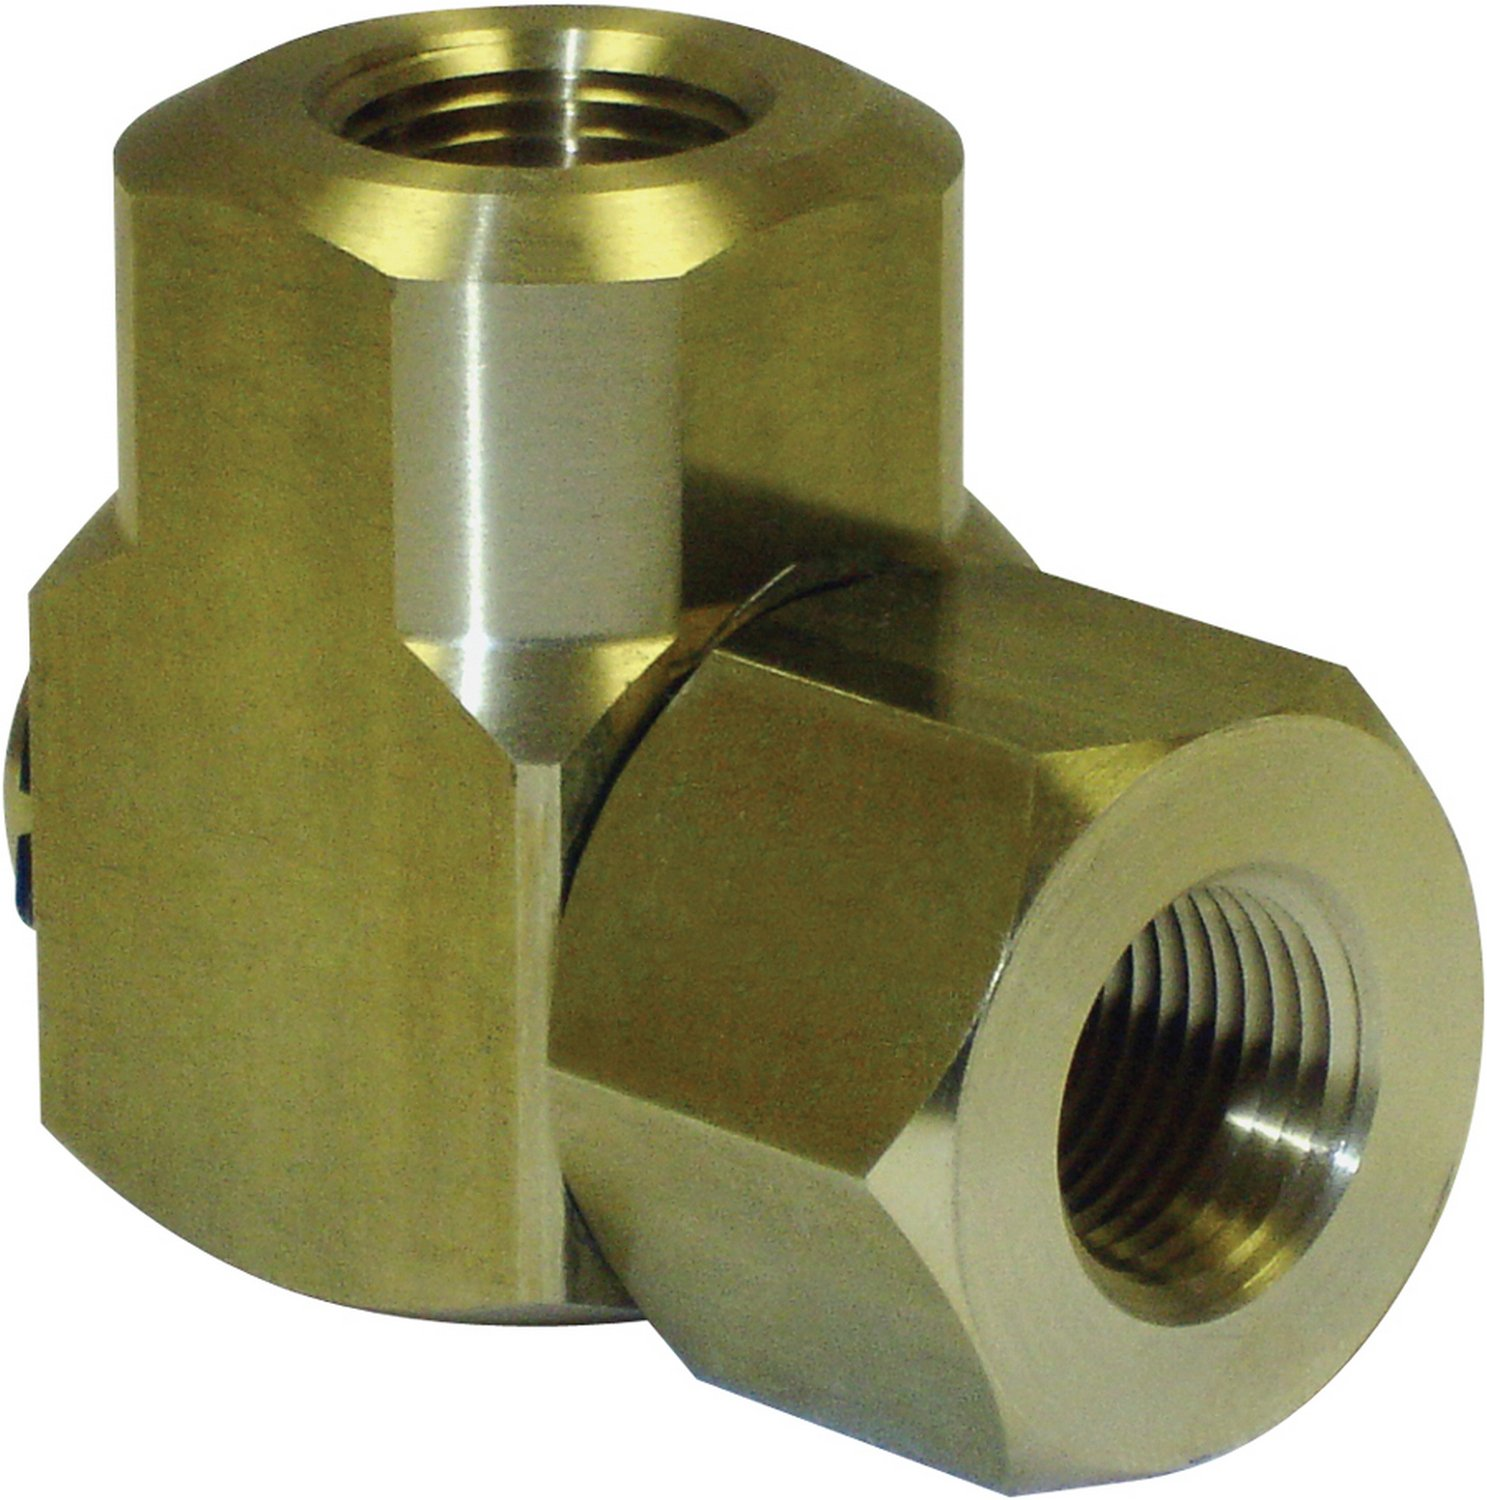 Coxreels 439-1 Replacement Swivel with Viton Seal, 1/2'' NPT by Coxreels (Image #1)